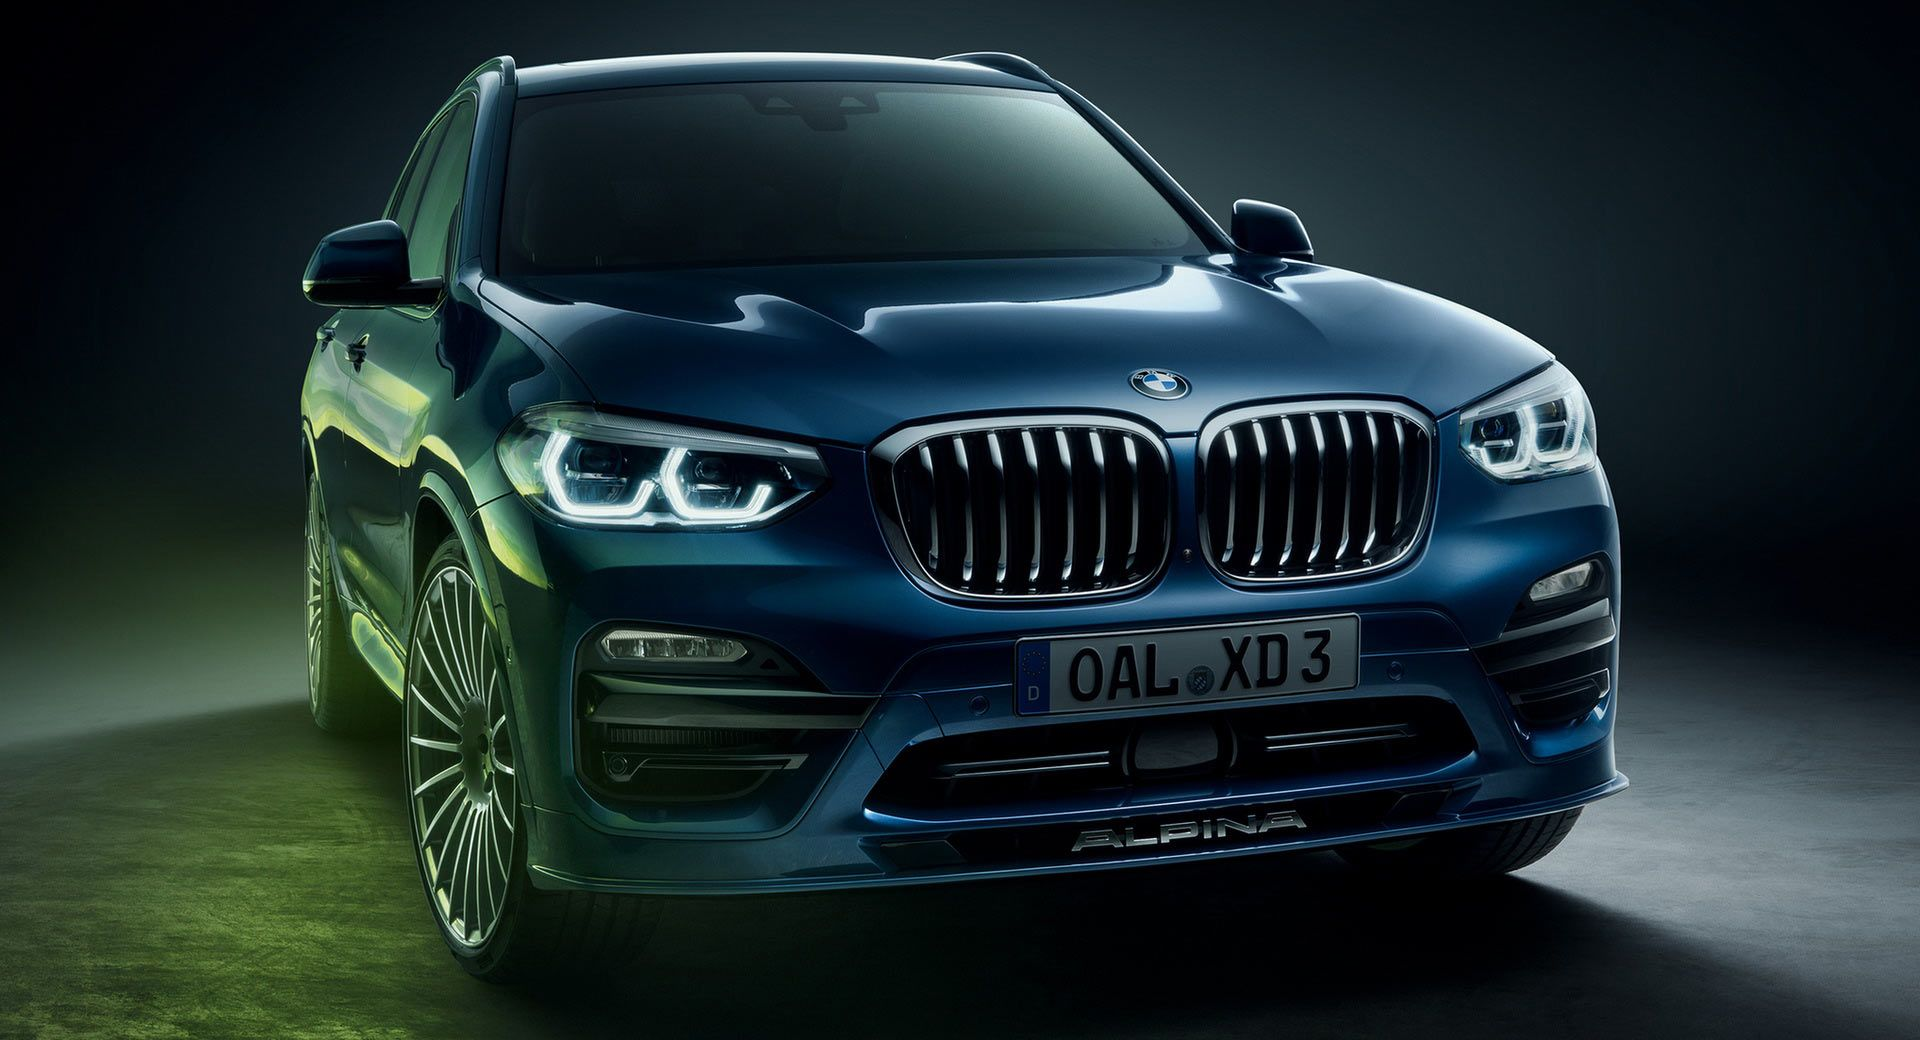 2019 Alpina Xd3 Shows Up With Four Turbos 388hp 0 62 In 4 6